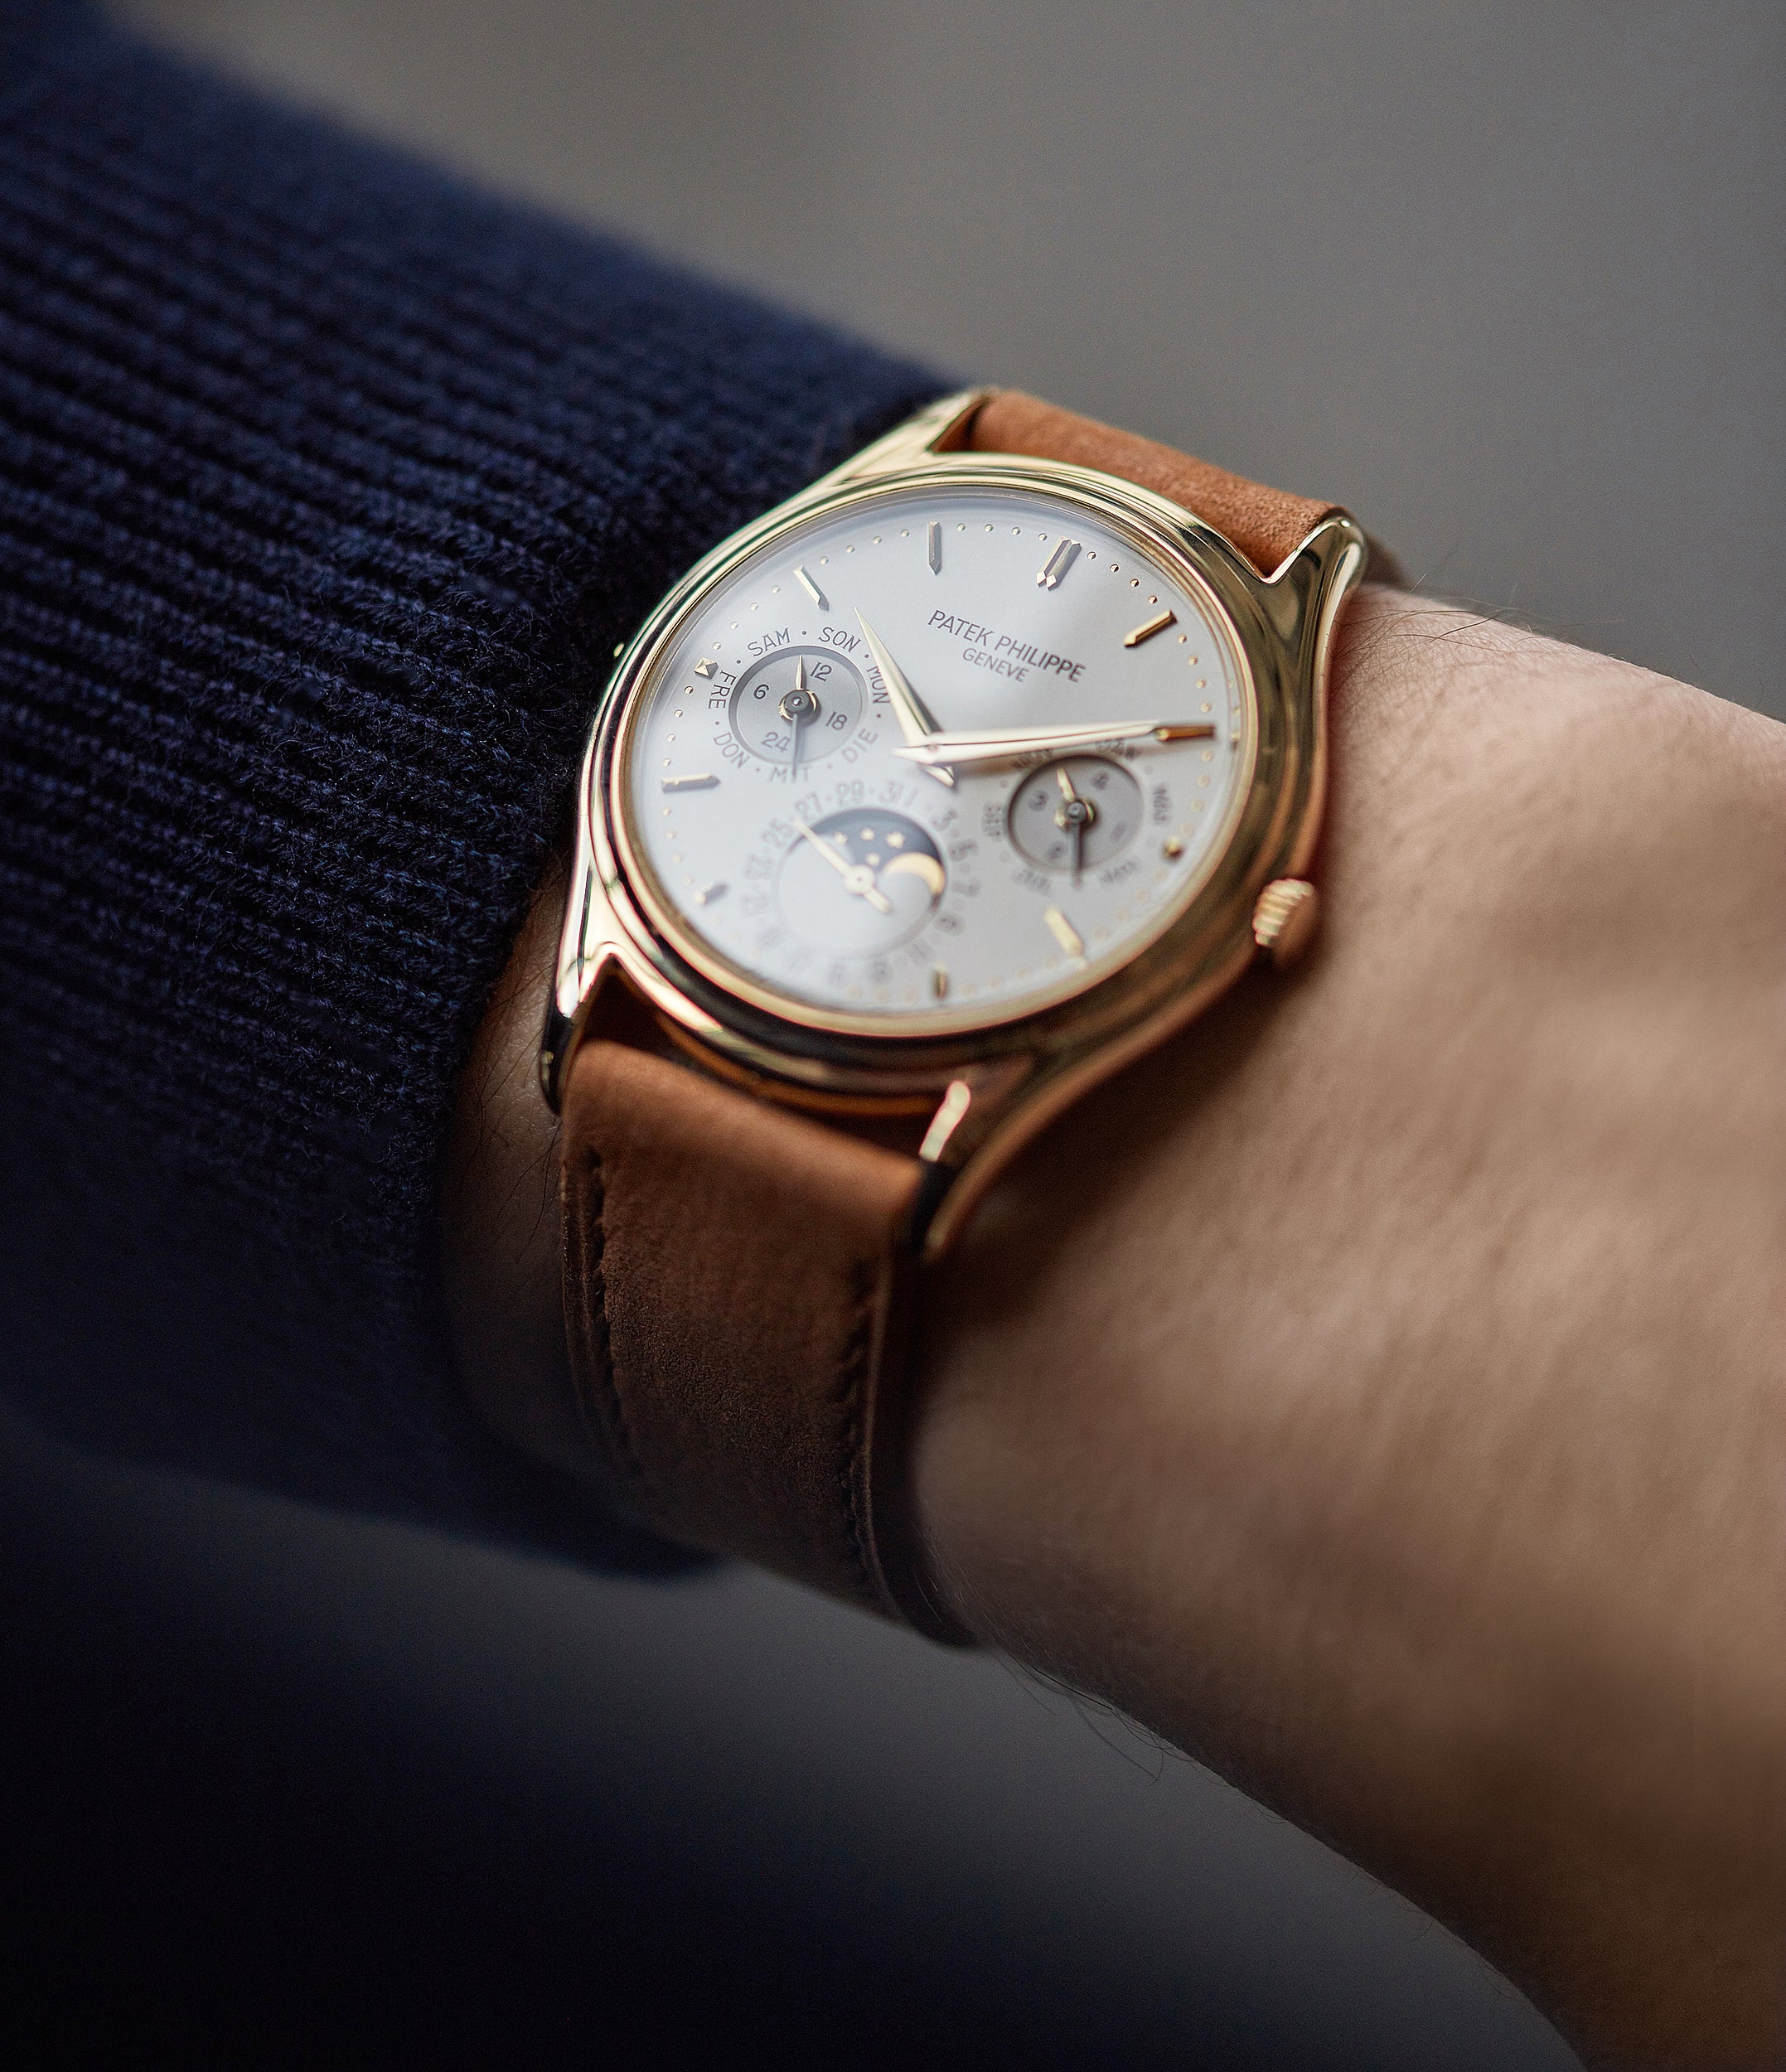 selling Patek Philippe 3940J first series yellow gold perpetual calendar dress watch for sale online at A Collected Man London